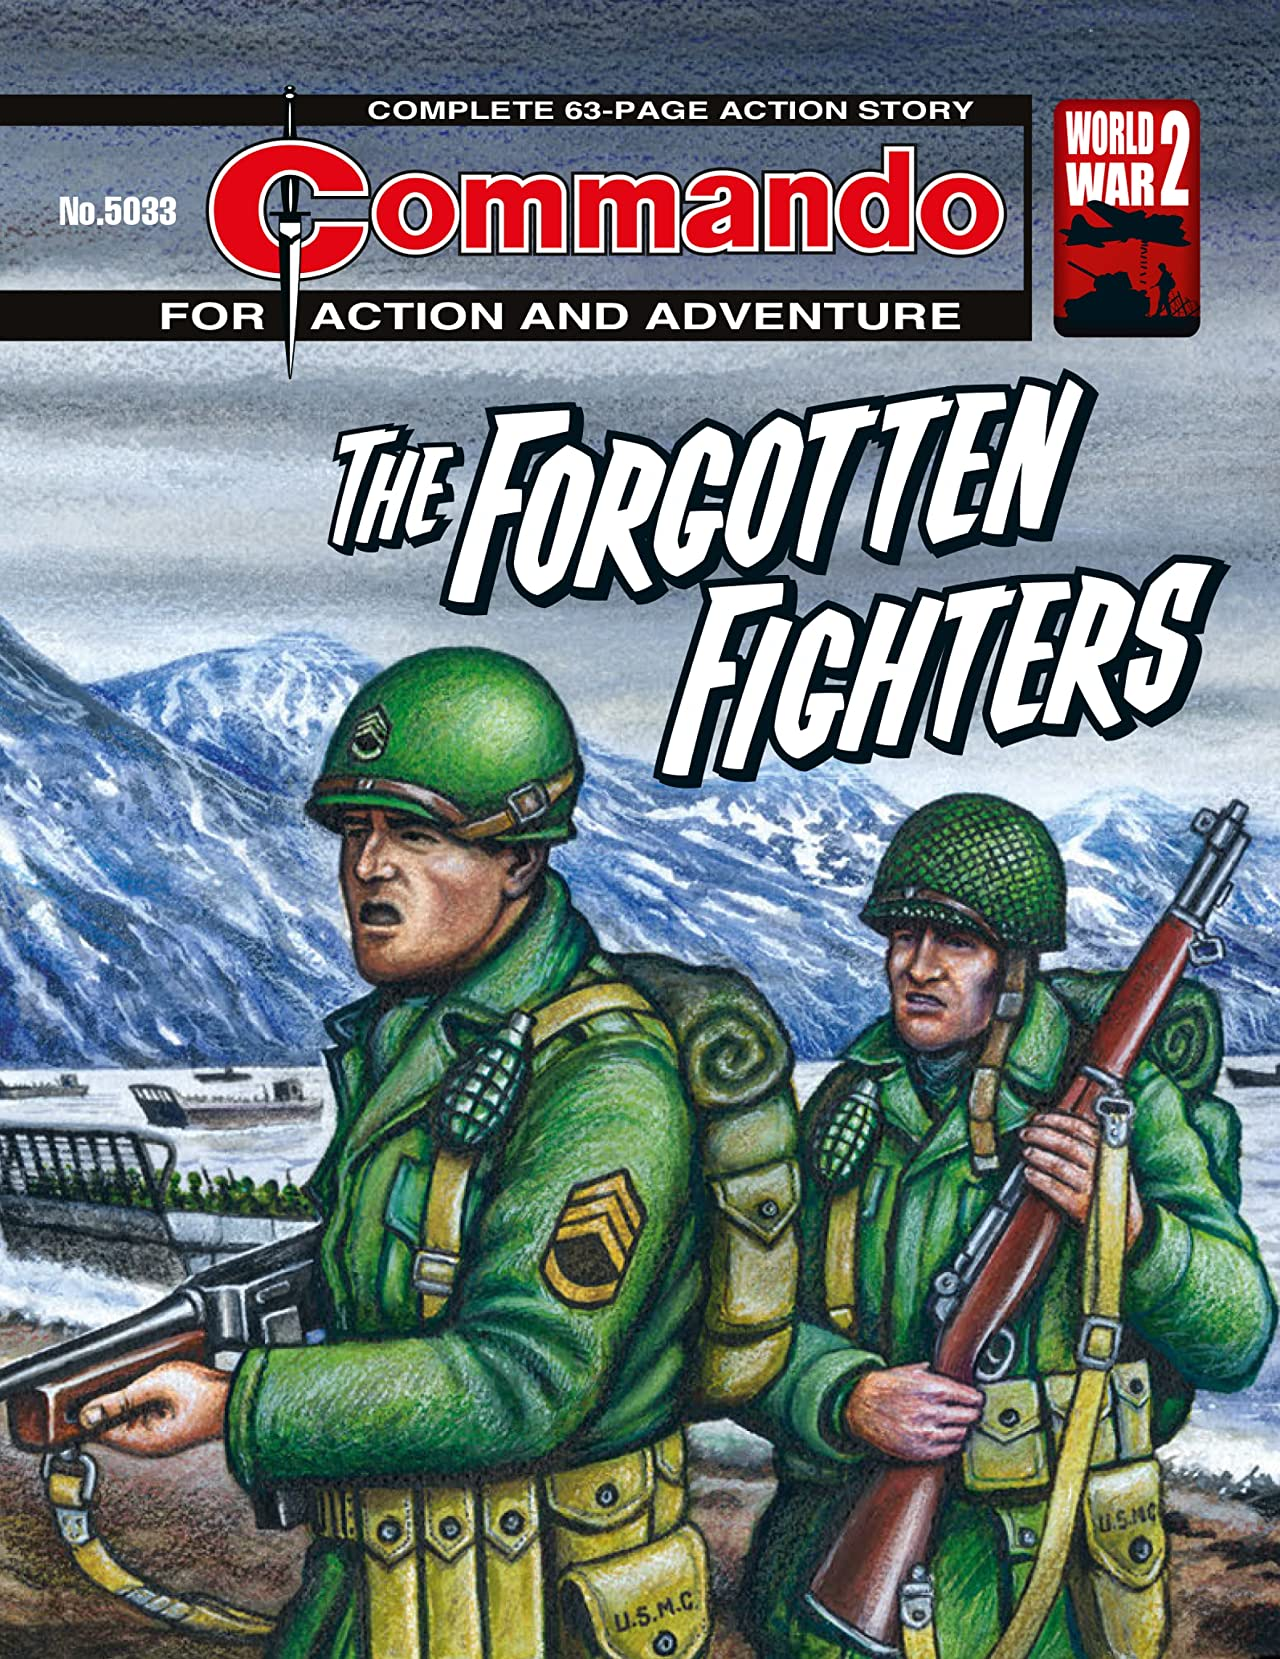 Commando #5033: The Forgotten Fighters